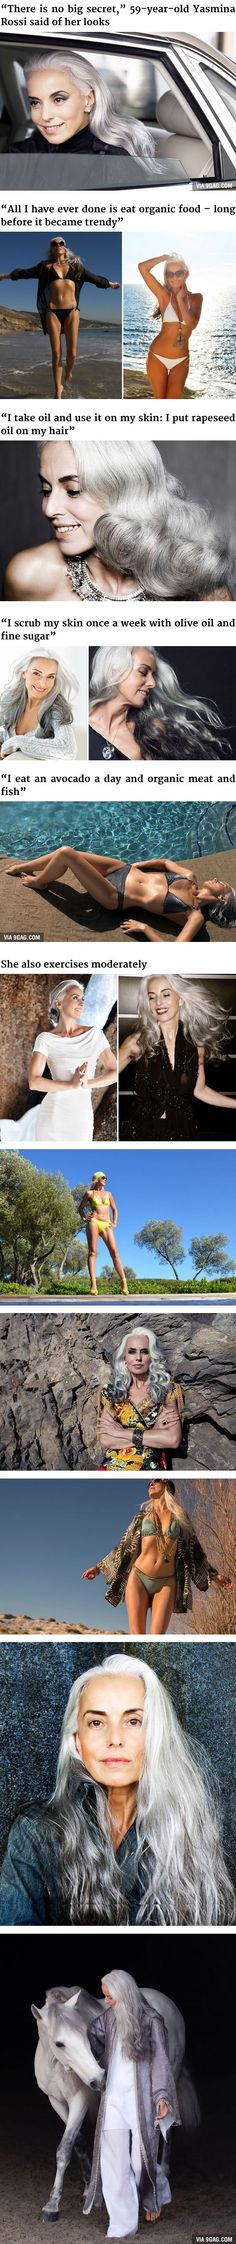 59-Year-Old Grandmother Is Still Killing It As A Fashion Model - 9GAG